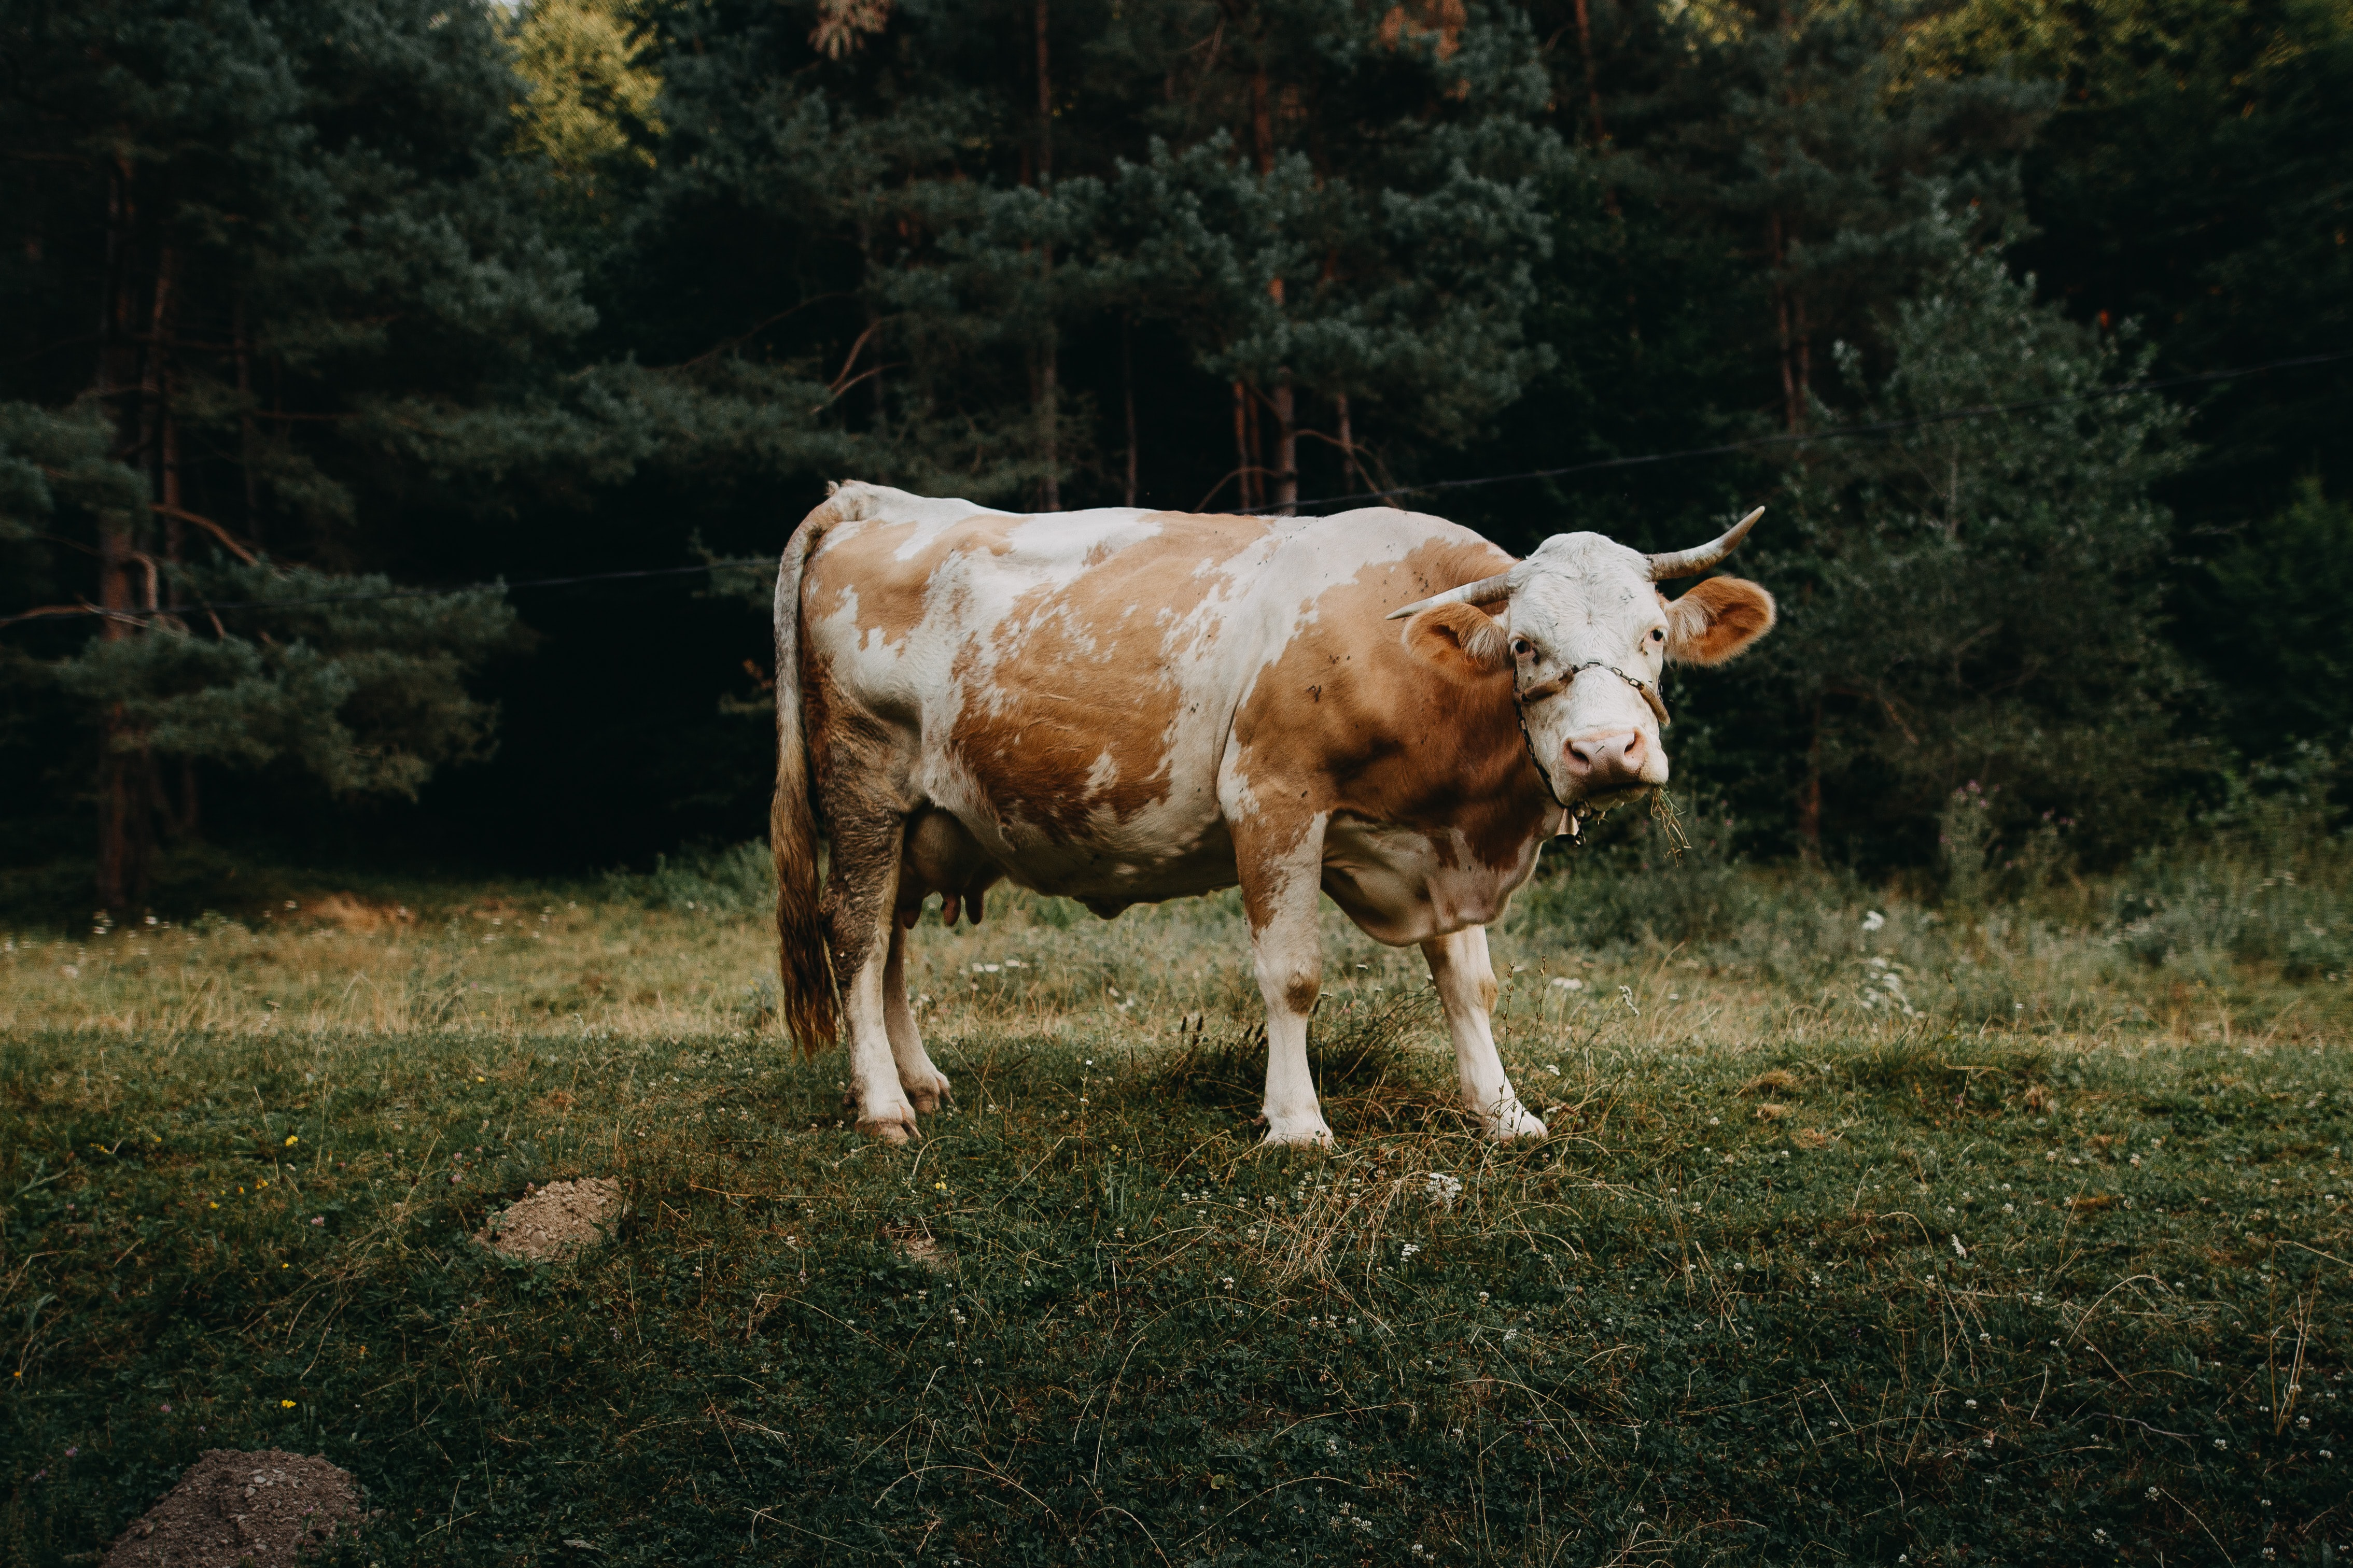 A brown and white cow with a chained mouth and a bell around its neck beside a dark forest